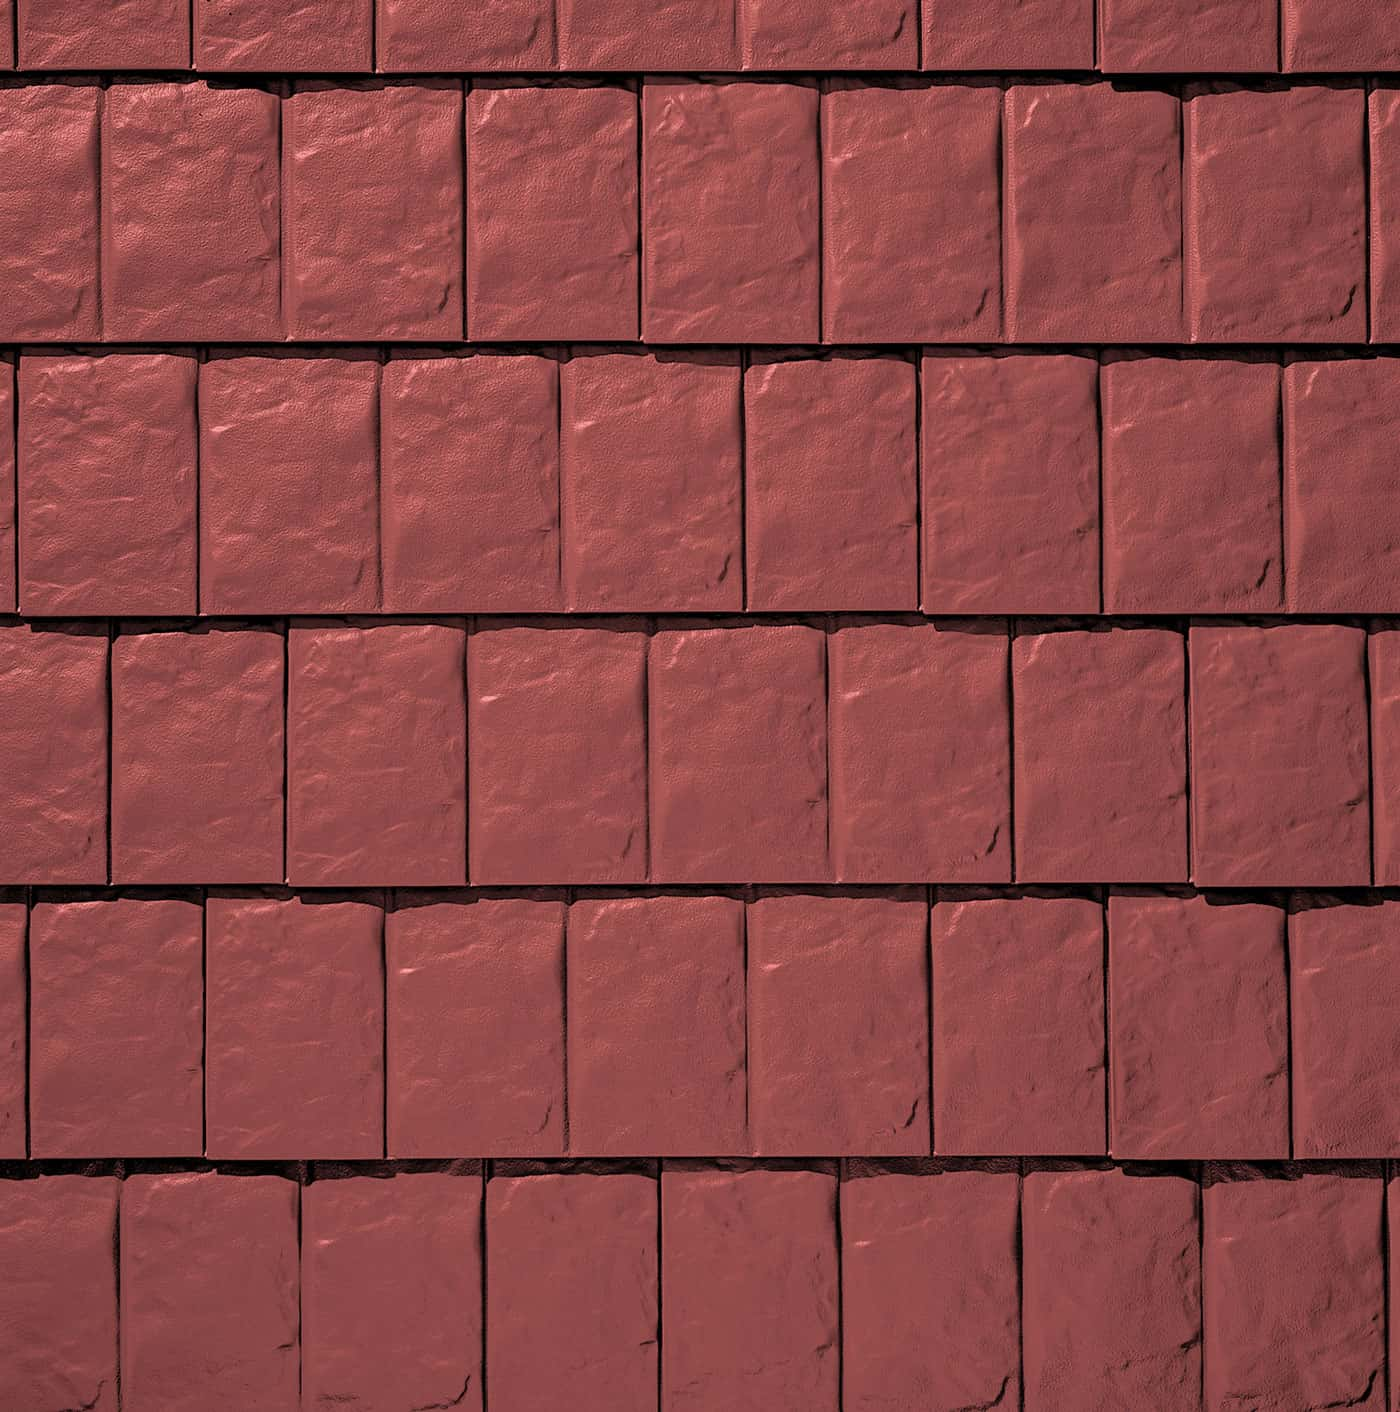 TAMKO Metalworks Stonecrest Slate Sequoia Red Swatch